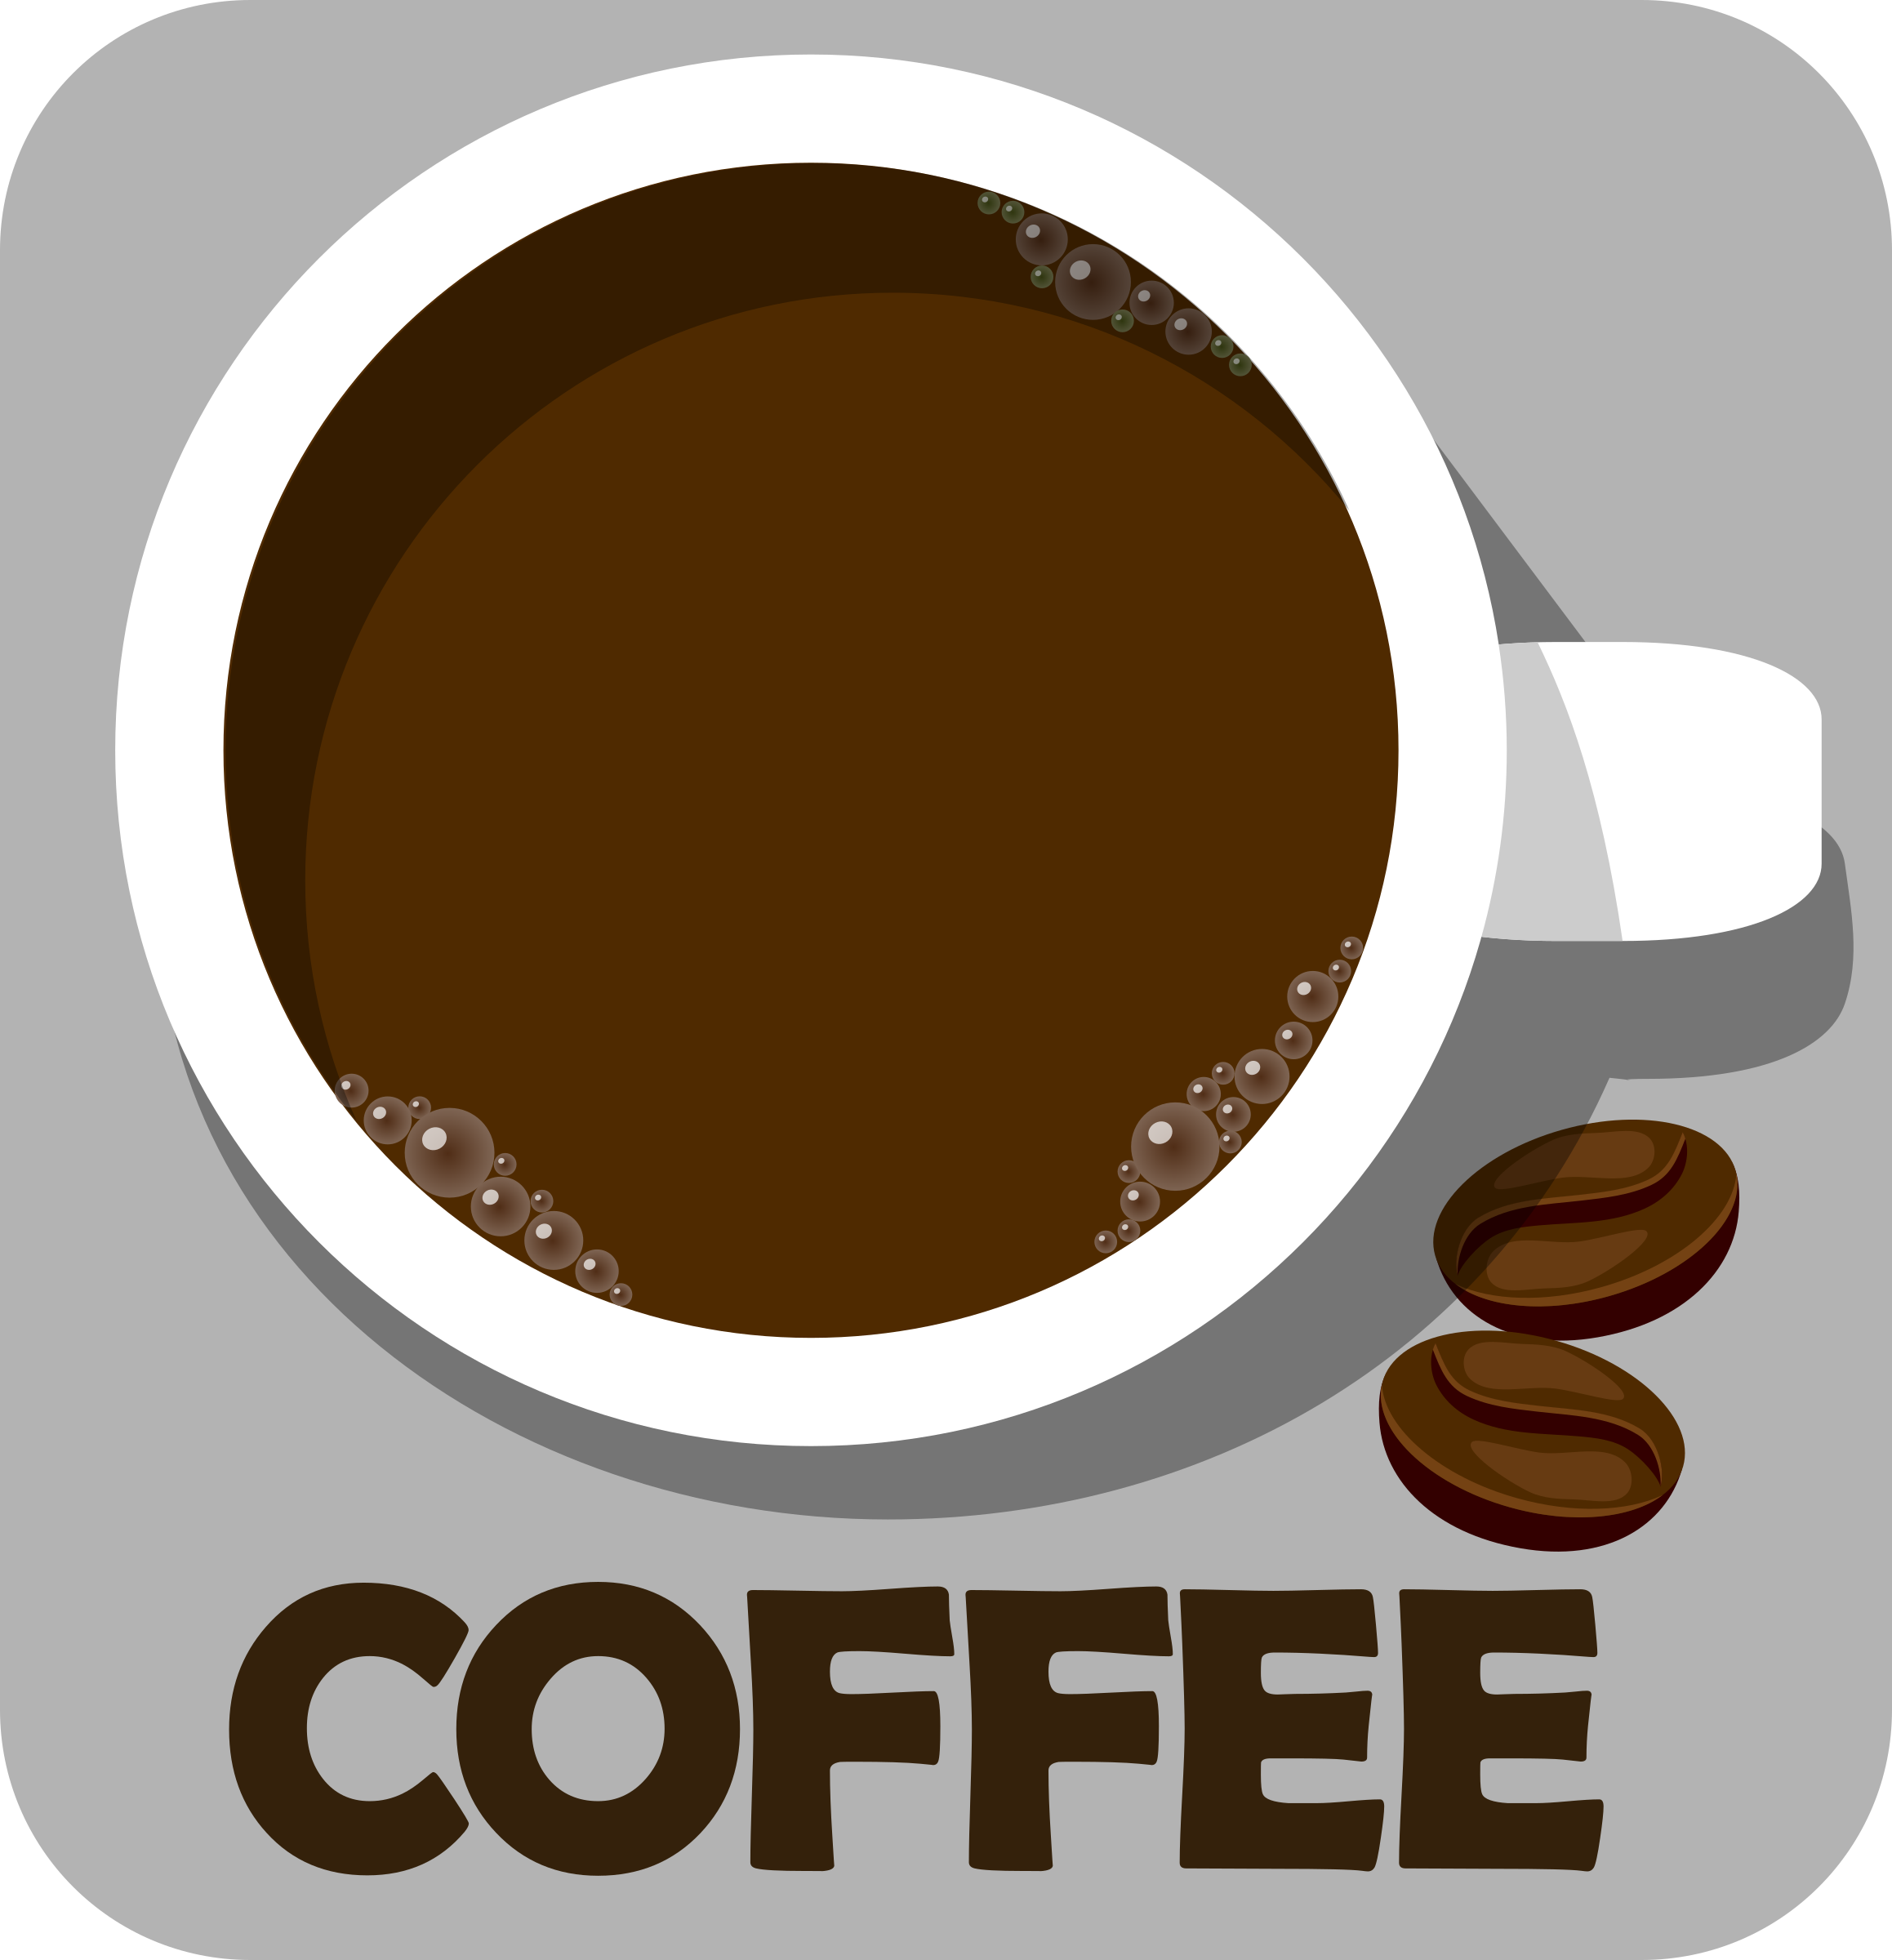 Coffee clipart cofee Coffee sign Coffee Clipart sign